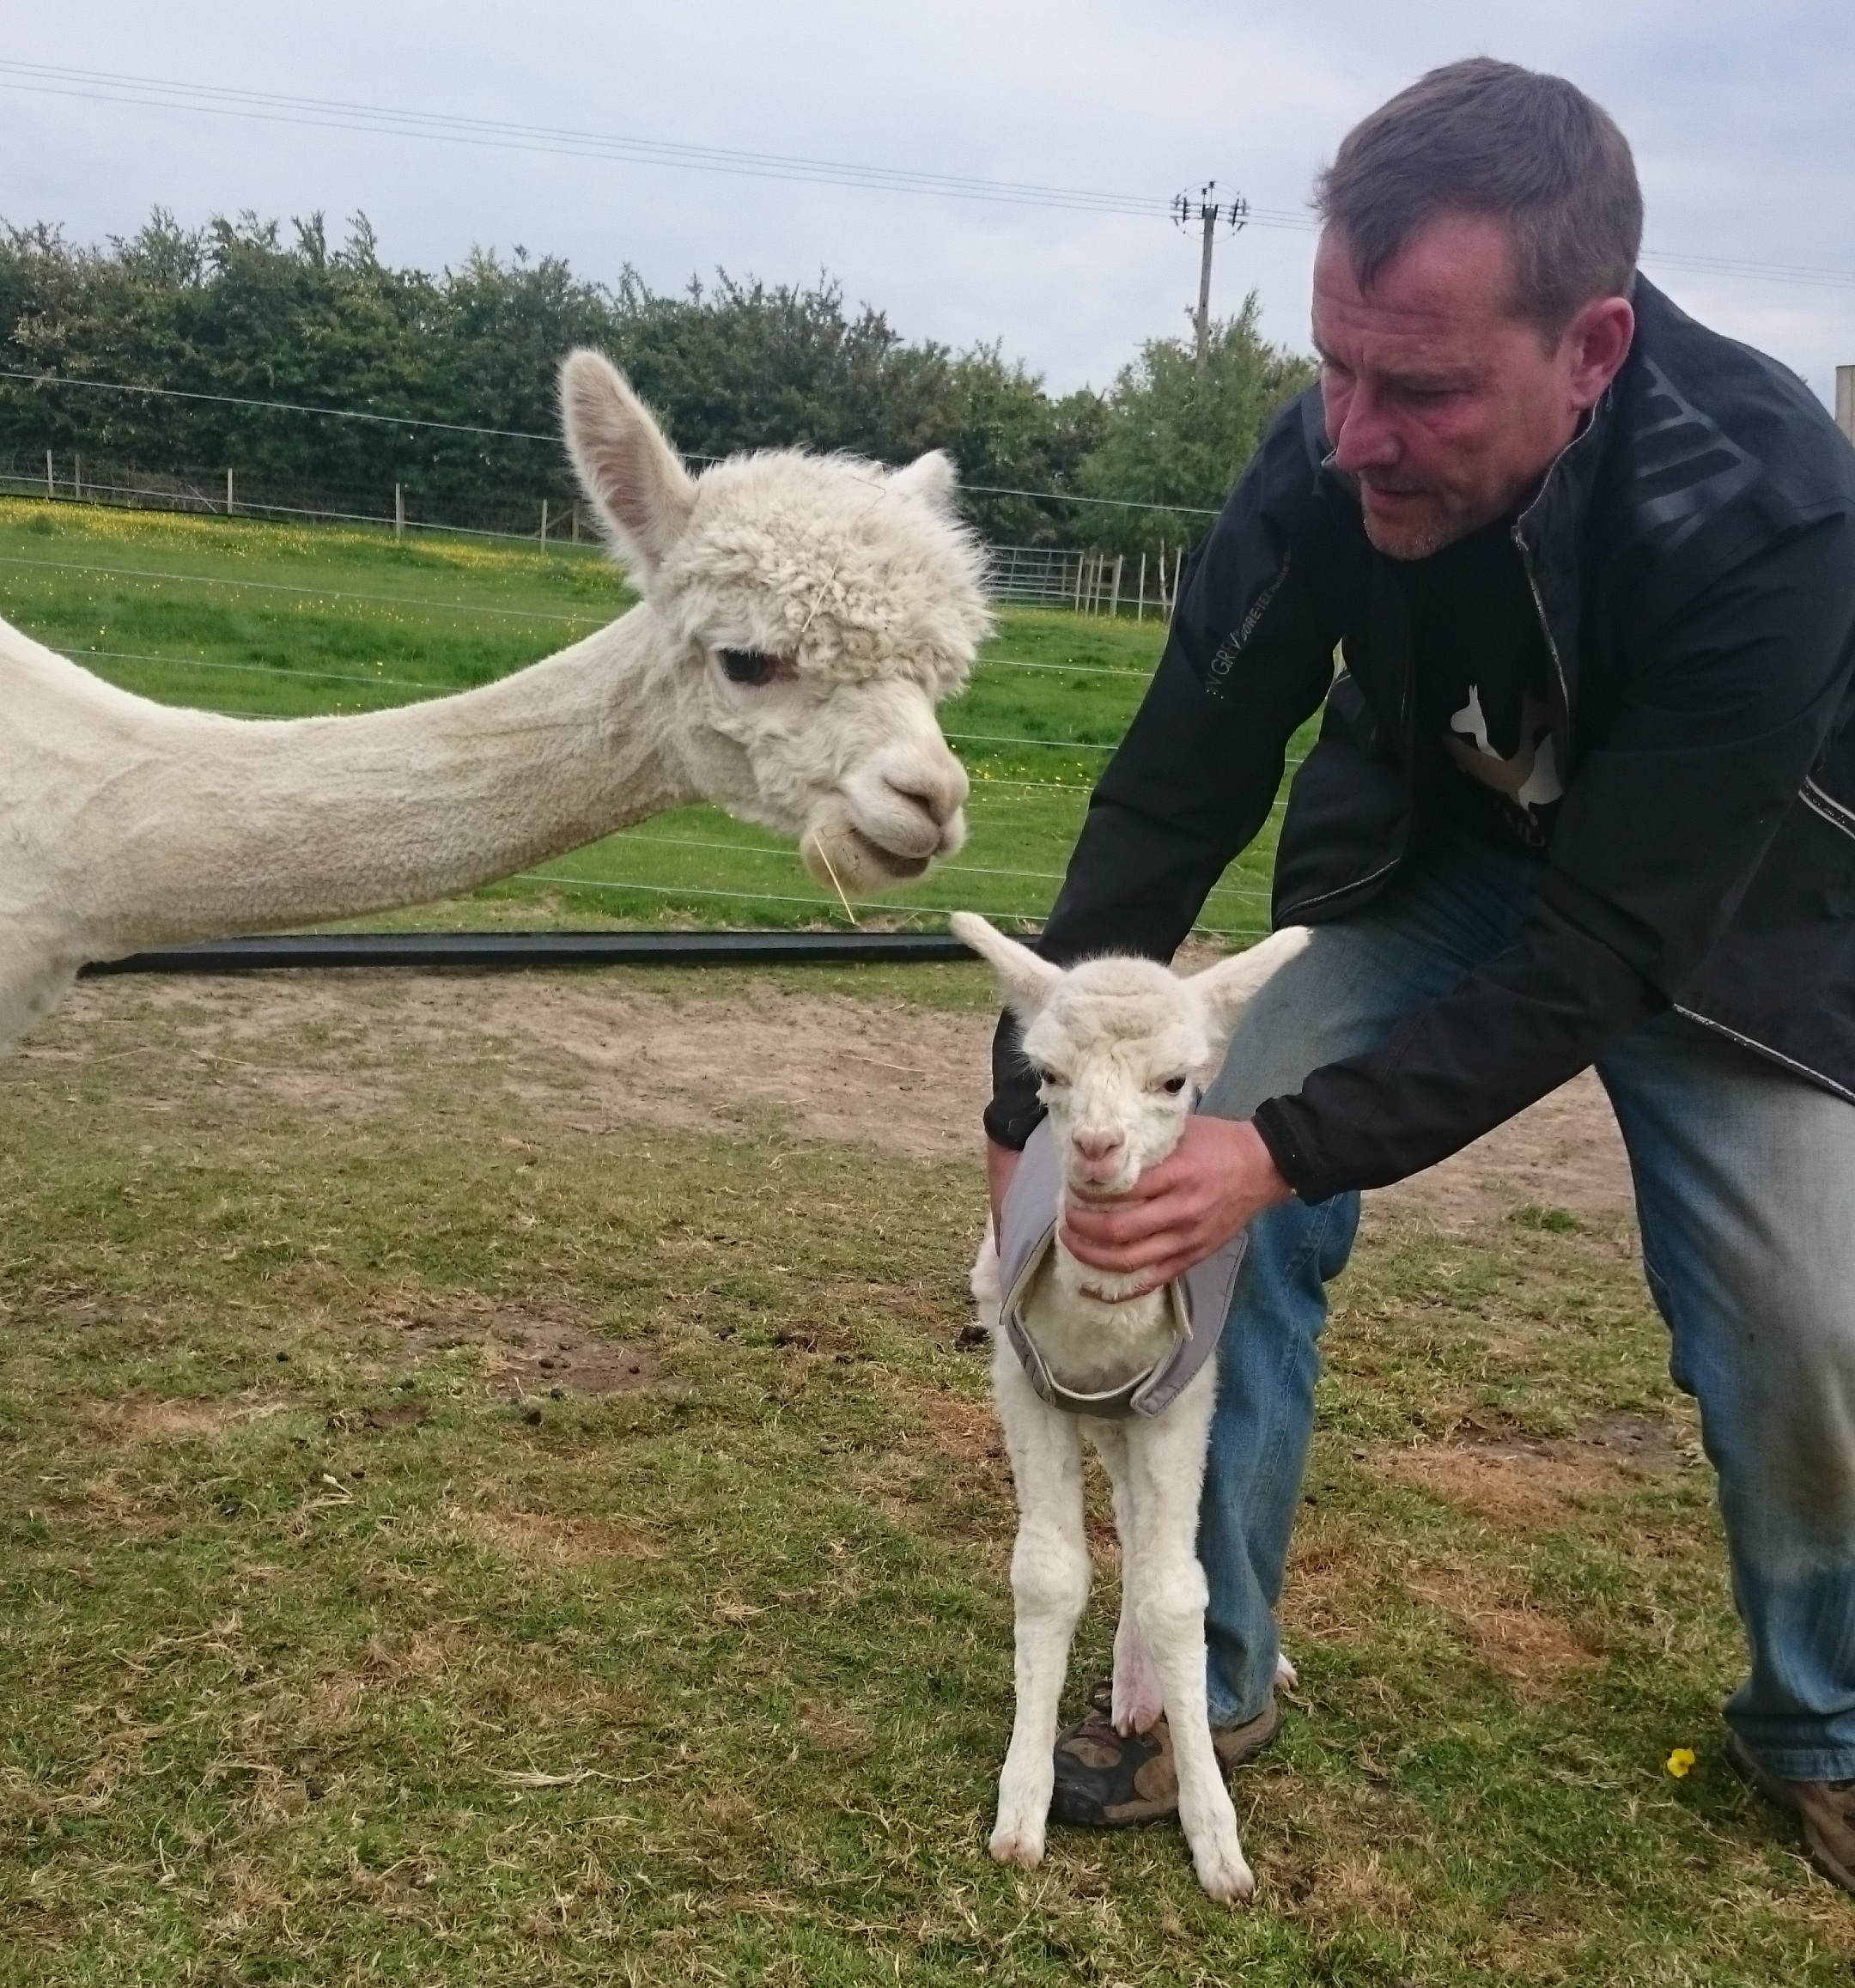 The first cria - a steep learning curve for any new breeder